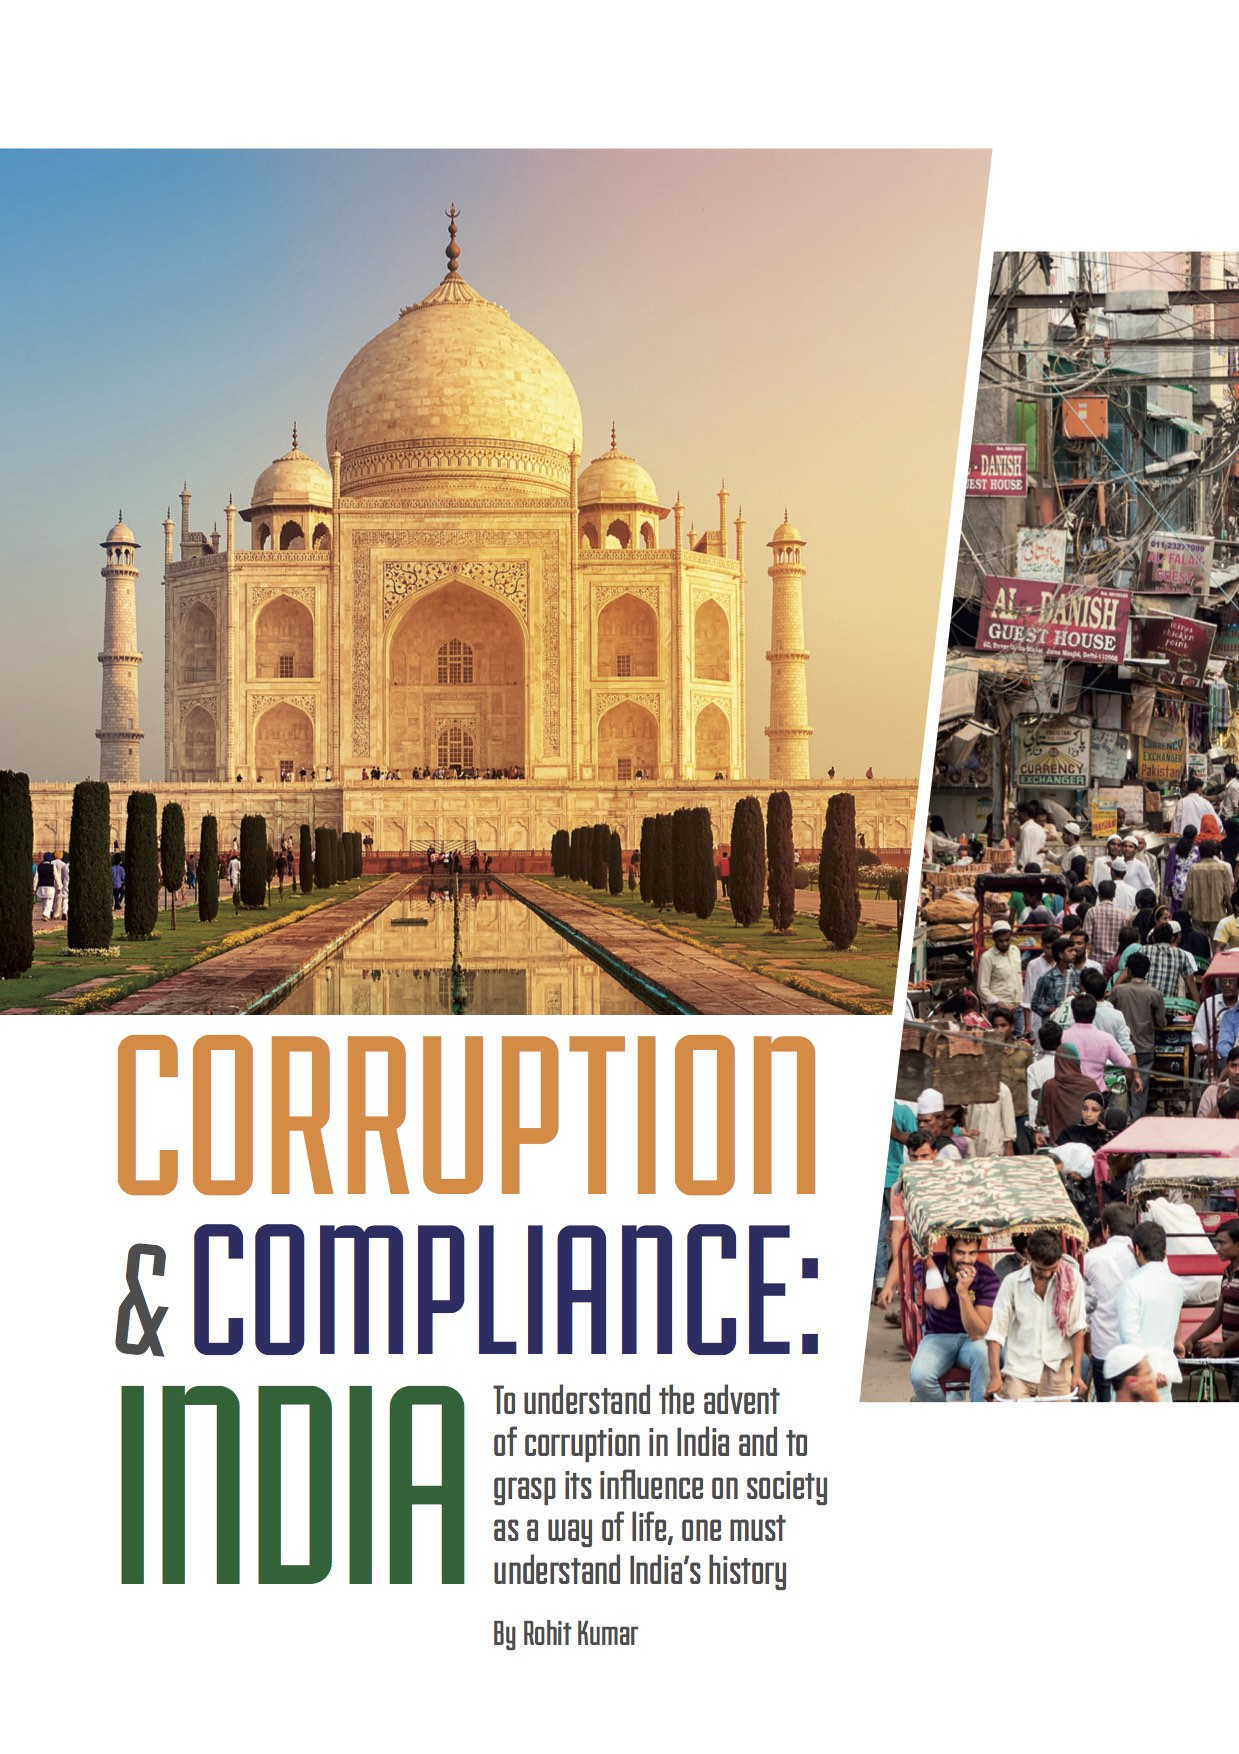 Mobility Oct '17 Corruption & Compliance India Page 114